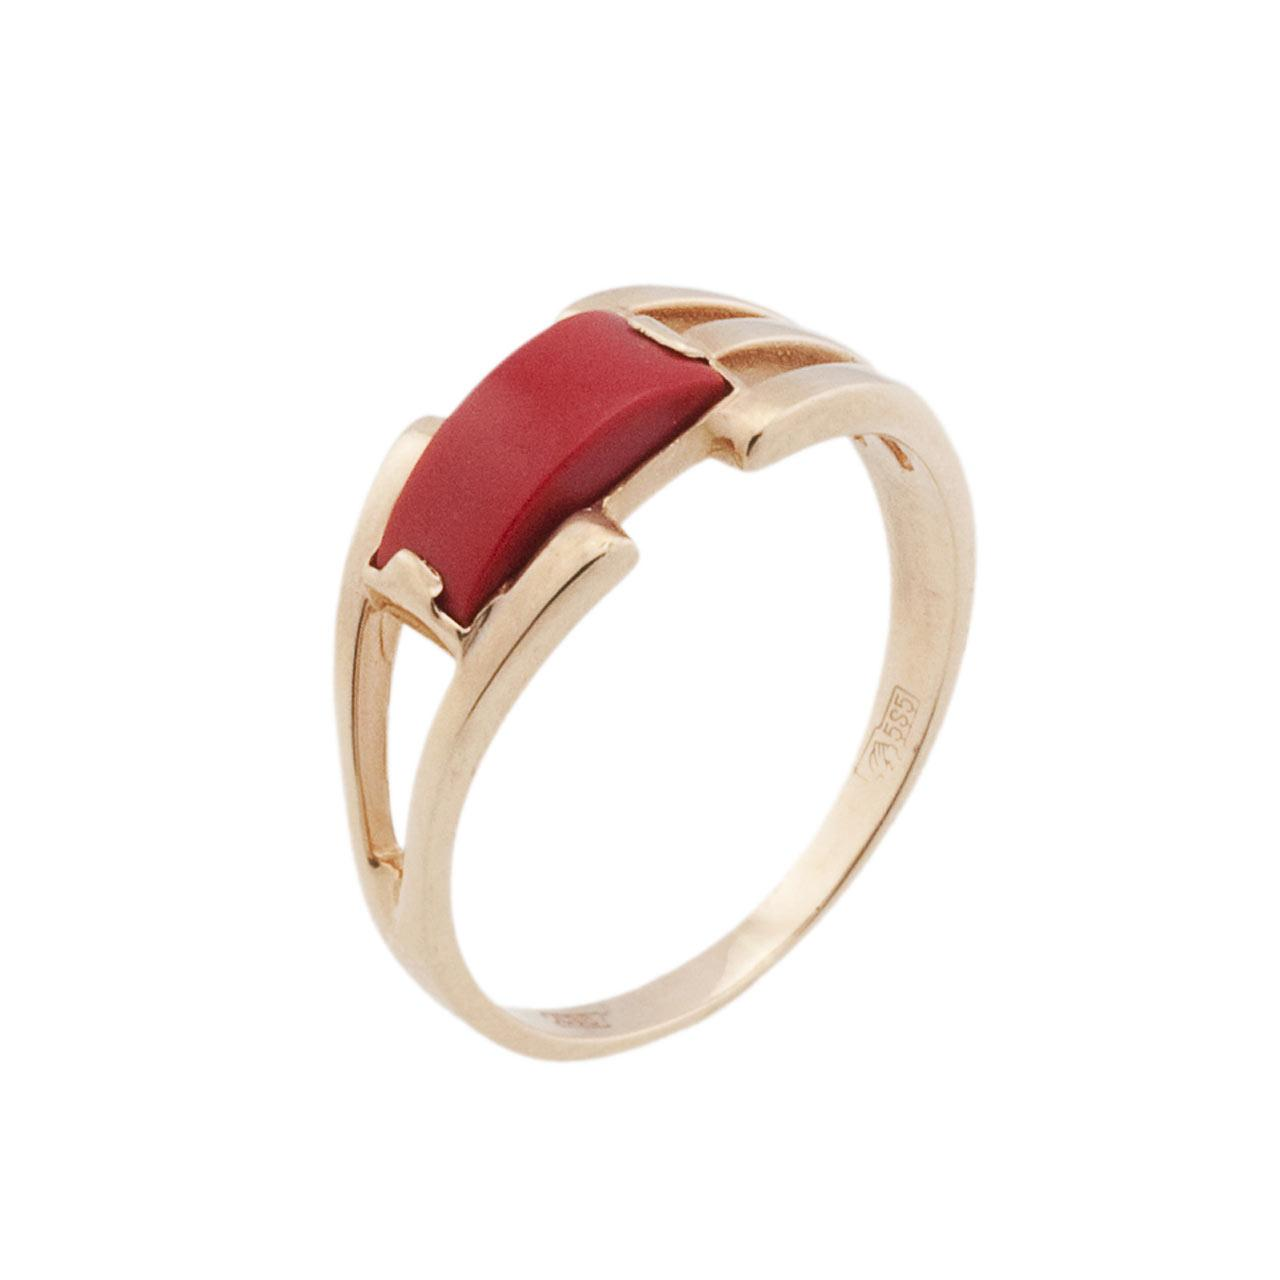 Coral ring on sale 1